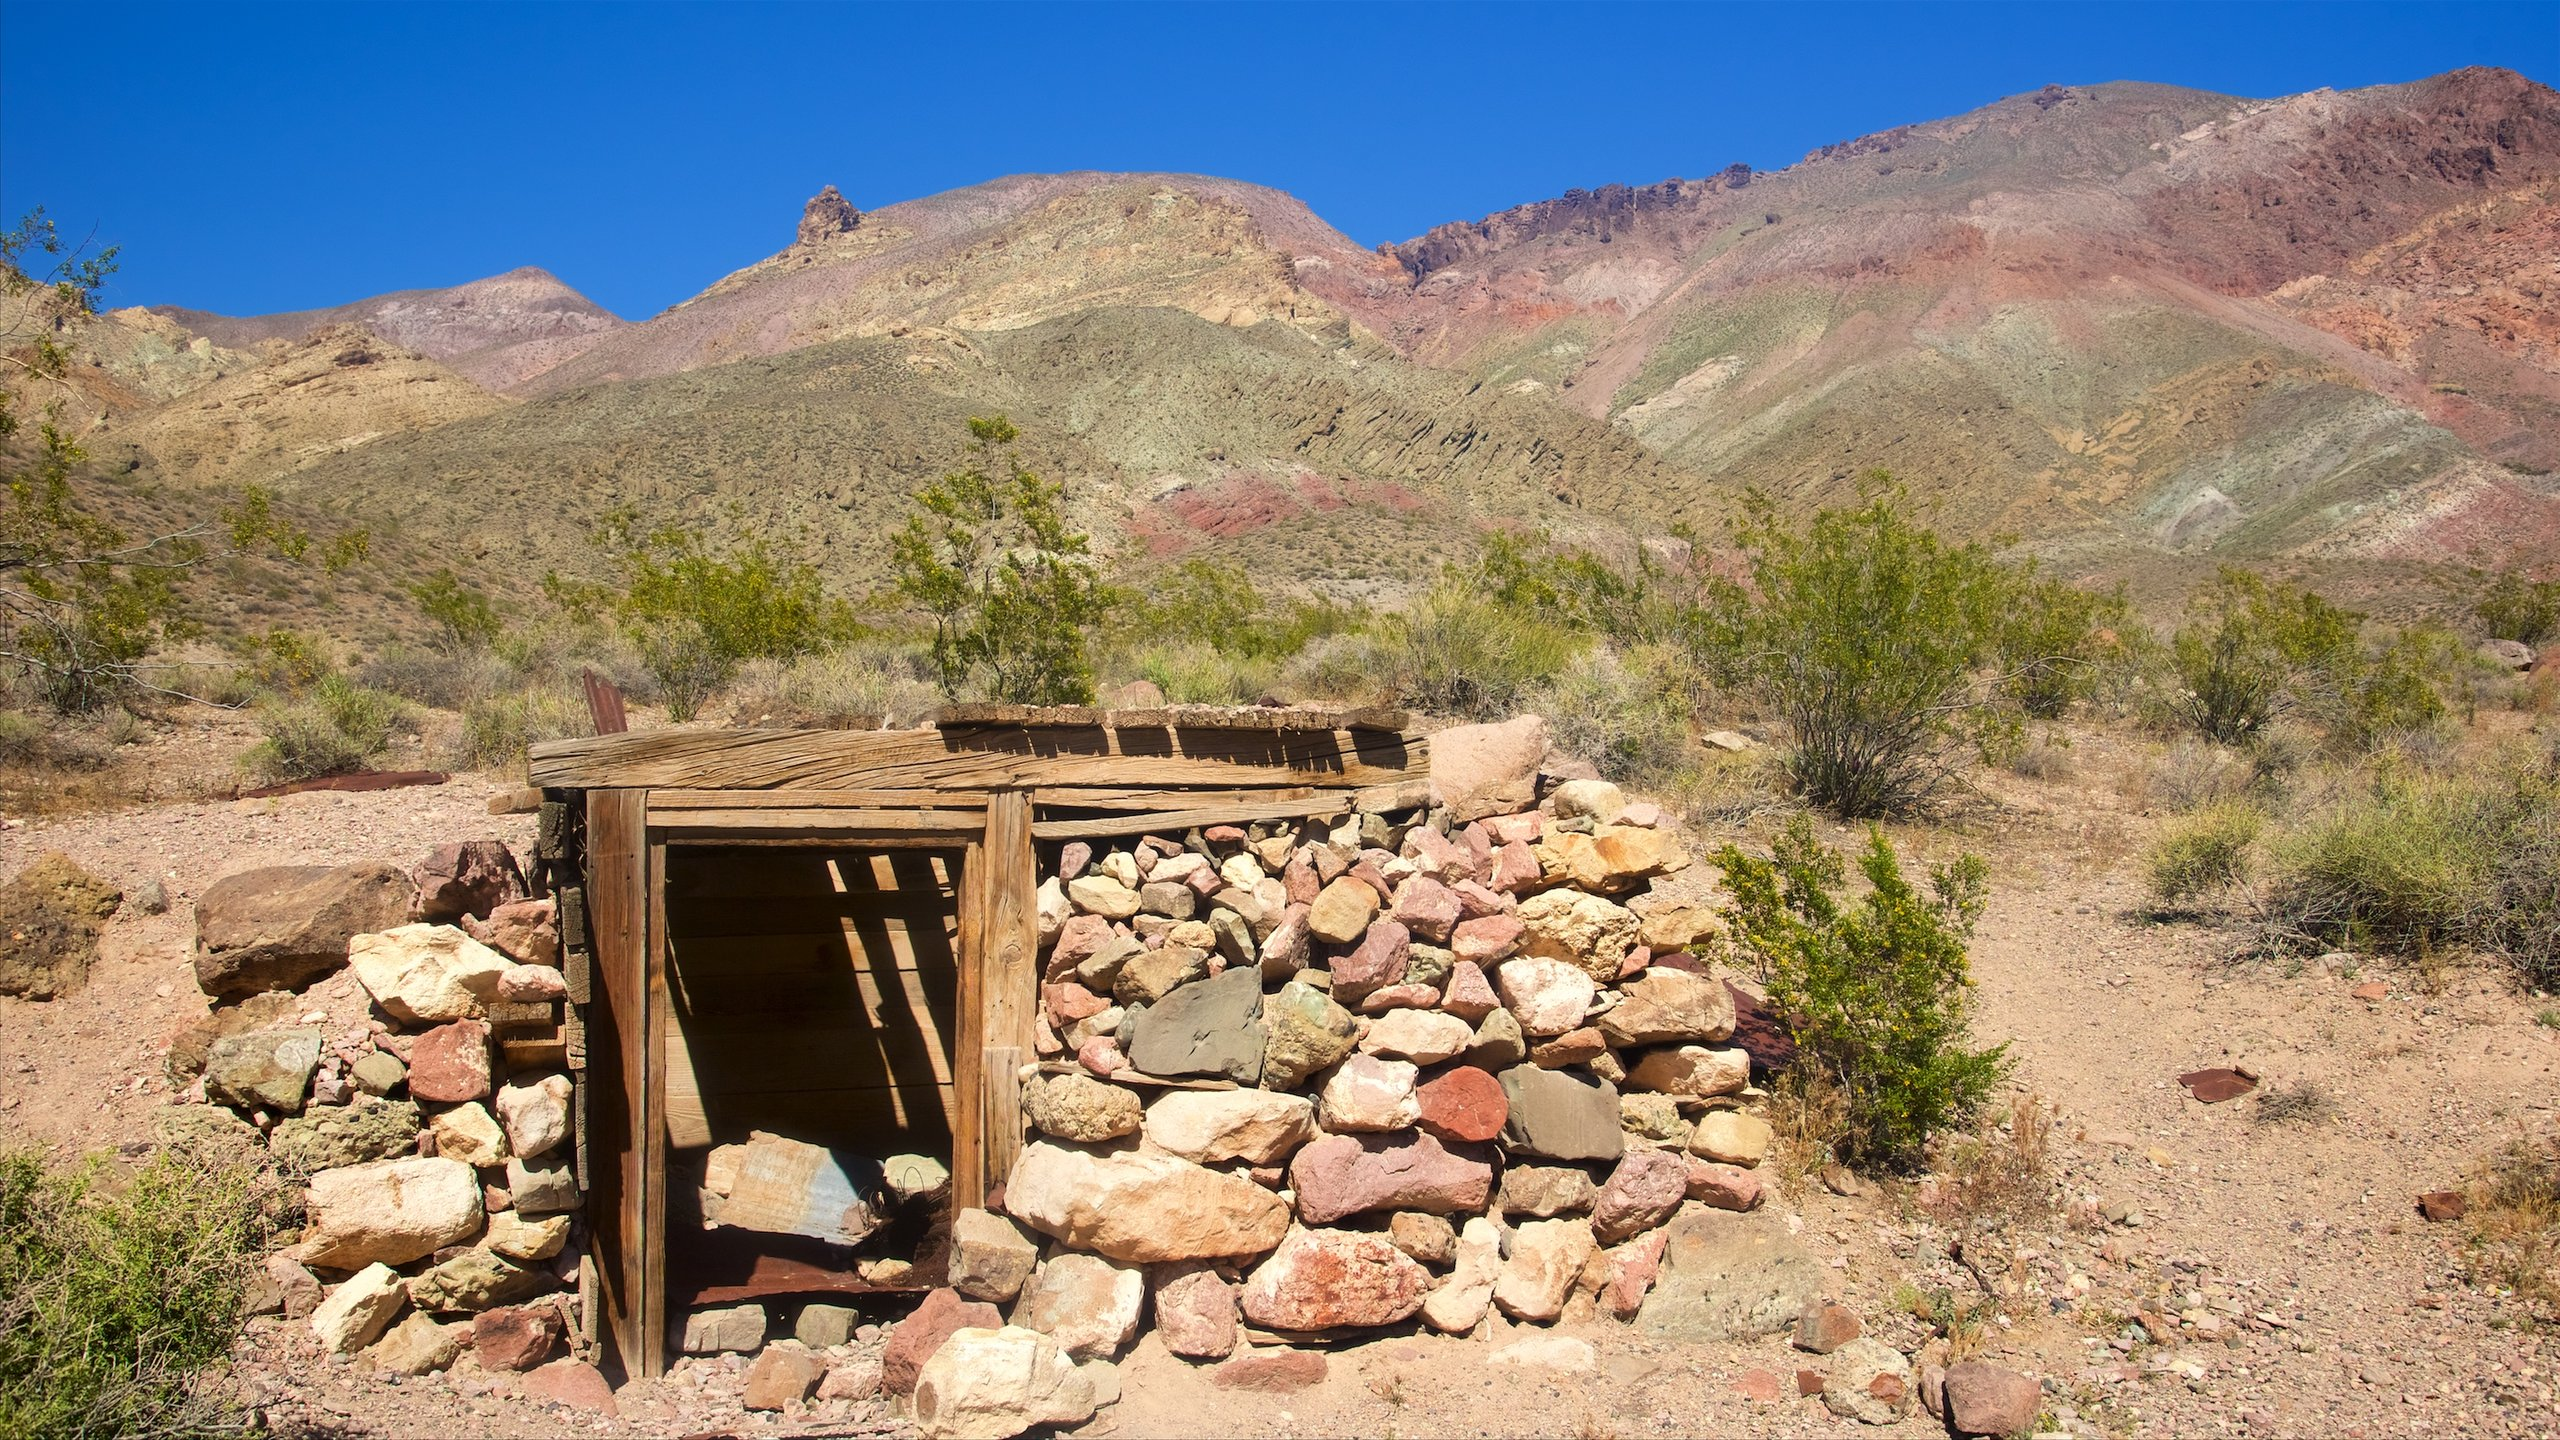 Perched above Titus Canyon, this boom-and-bust mining town has the dubious honor of being one of the West's most short-lived.